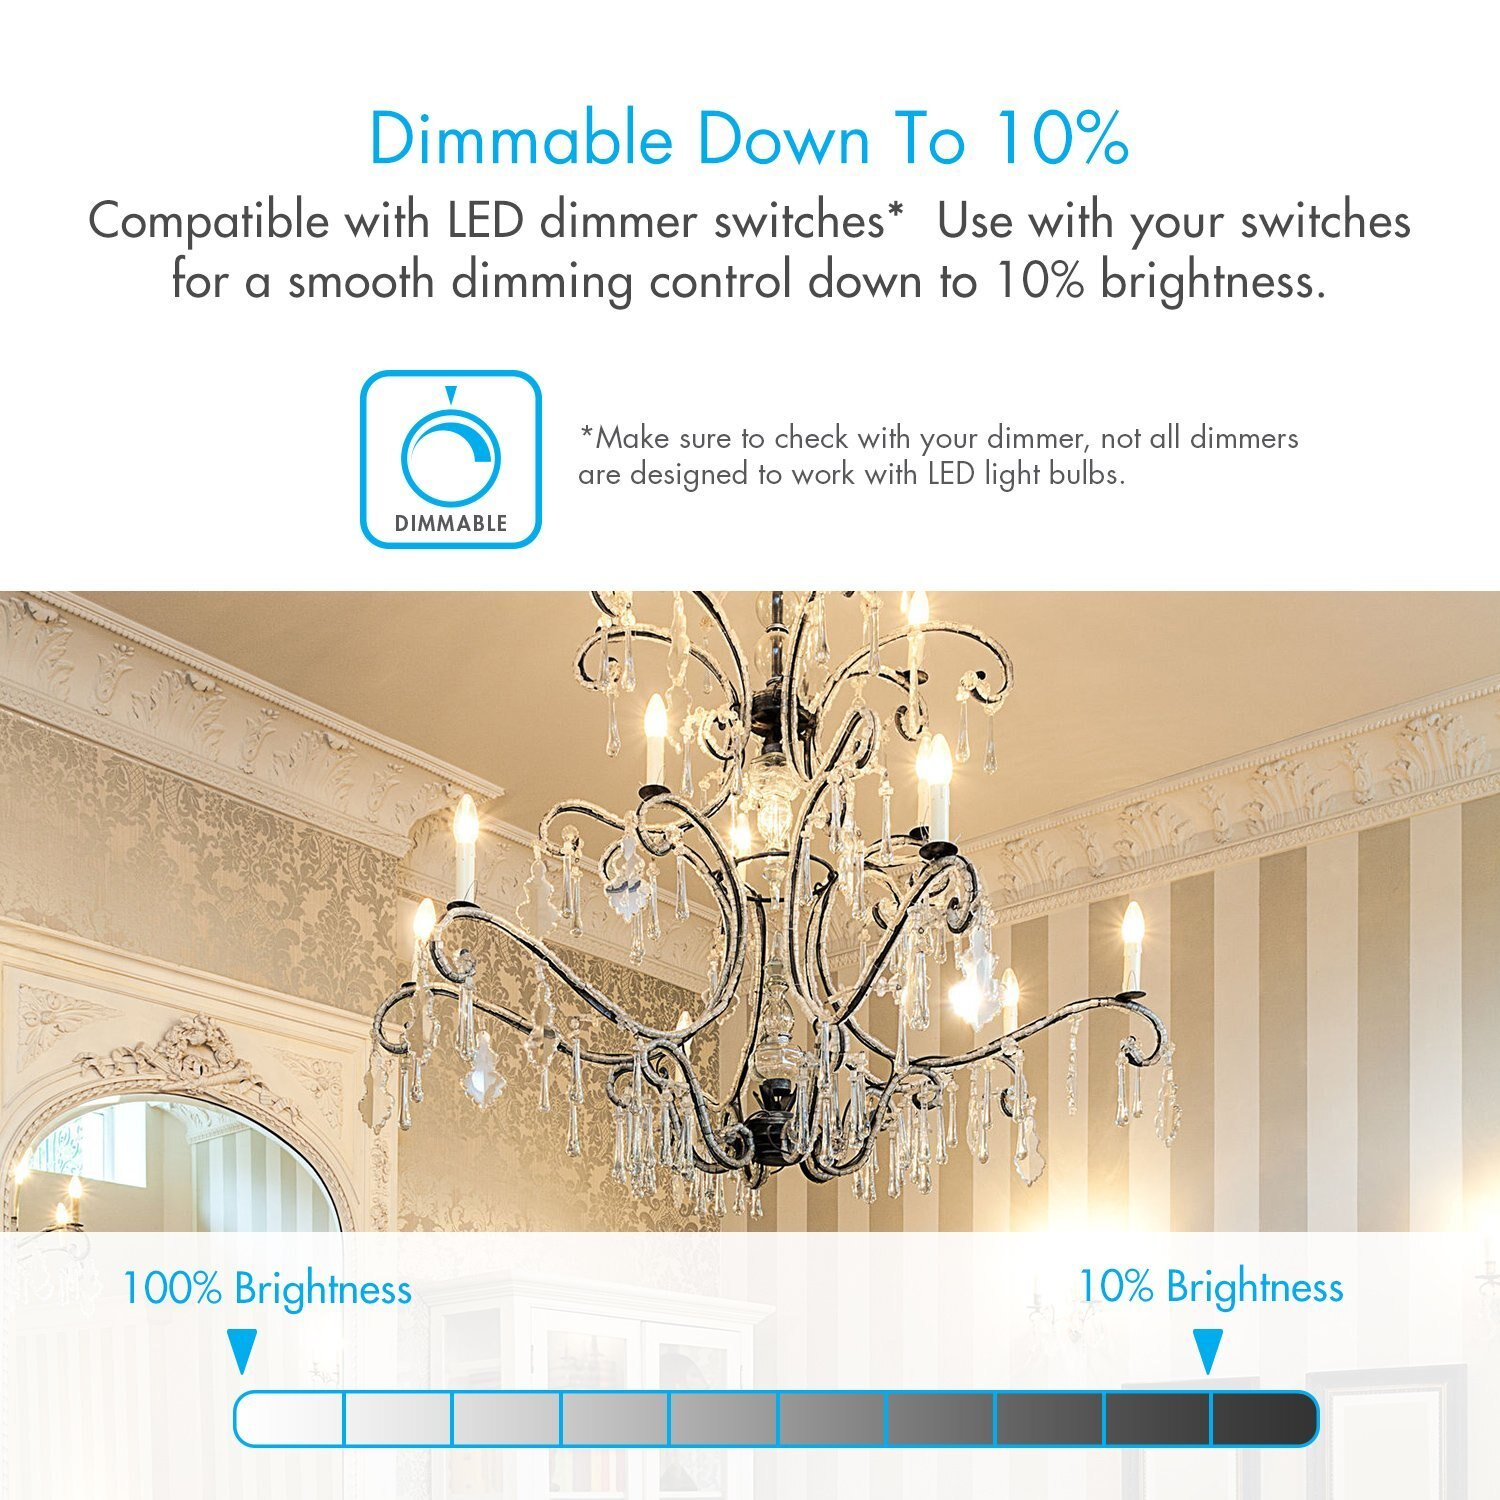 Tenergy Dimmable Candelabra LED Bulbs, 4W(40 Watt Equivalent), E12 LED  Bulbs, 400LM Warm White 2700K B11 Chandelier Light Bulbs, LED Ceiling Fan  Bulbs